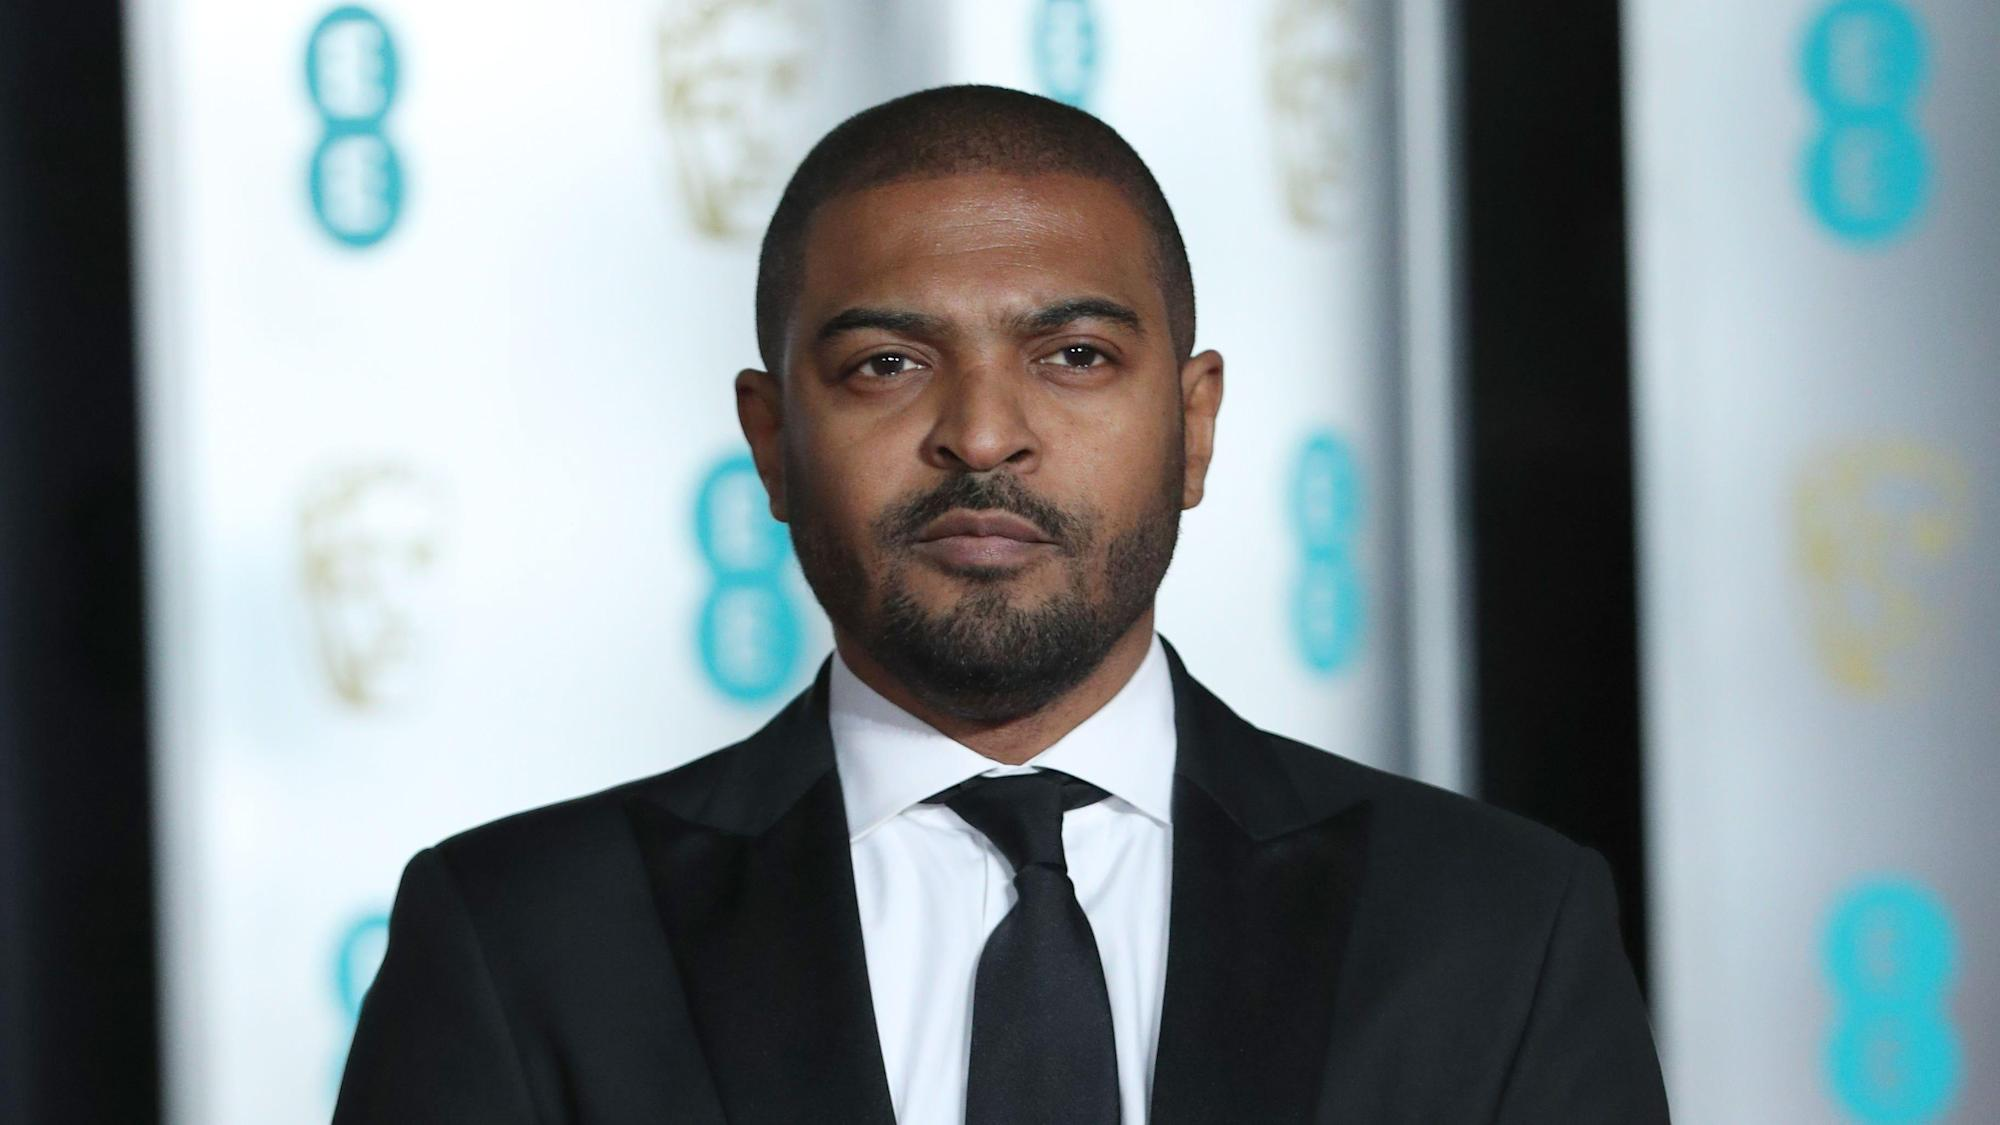 Police receive report of sex offences following allegations against Noel Clarke